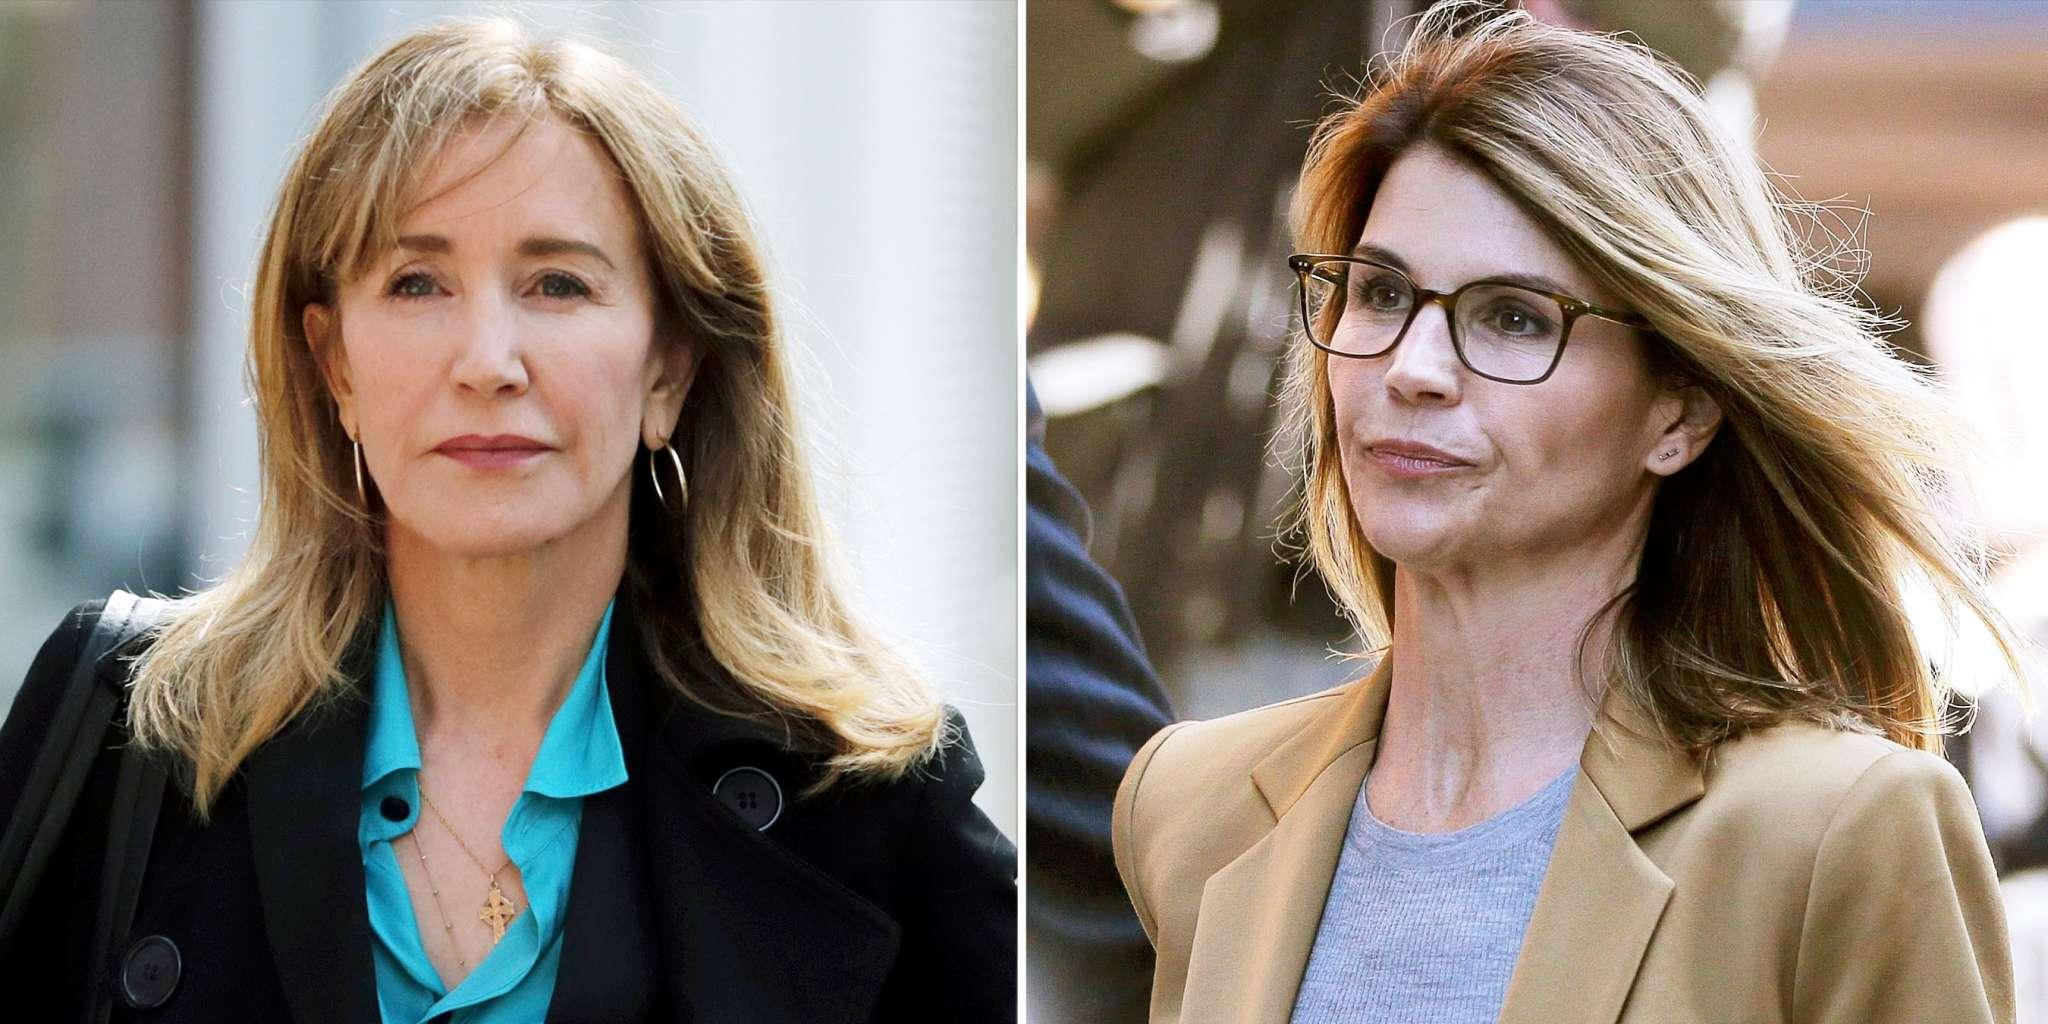 Lori Loughlin And Felicity Huffman - Attorney Explains That Their Children Might Have To Testify Againsit Them!